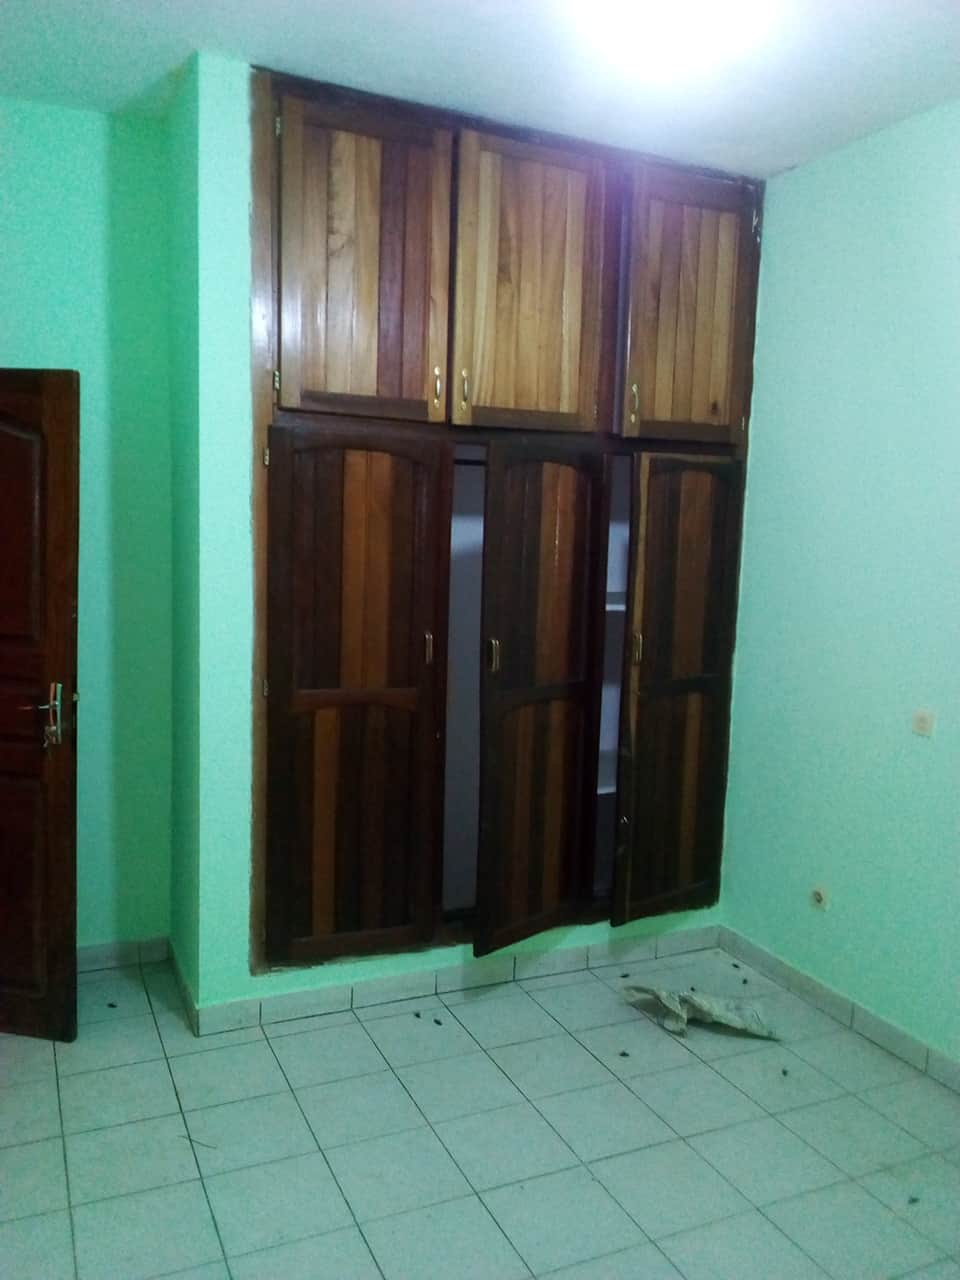 House (Villa) to rent - Yaoundé, Bastos, pas loin de l hotel le diplomate - 1 living room(s), 5 bedroom(s), 6 bathroom(s) - 15 FCFA / month